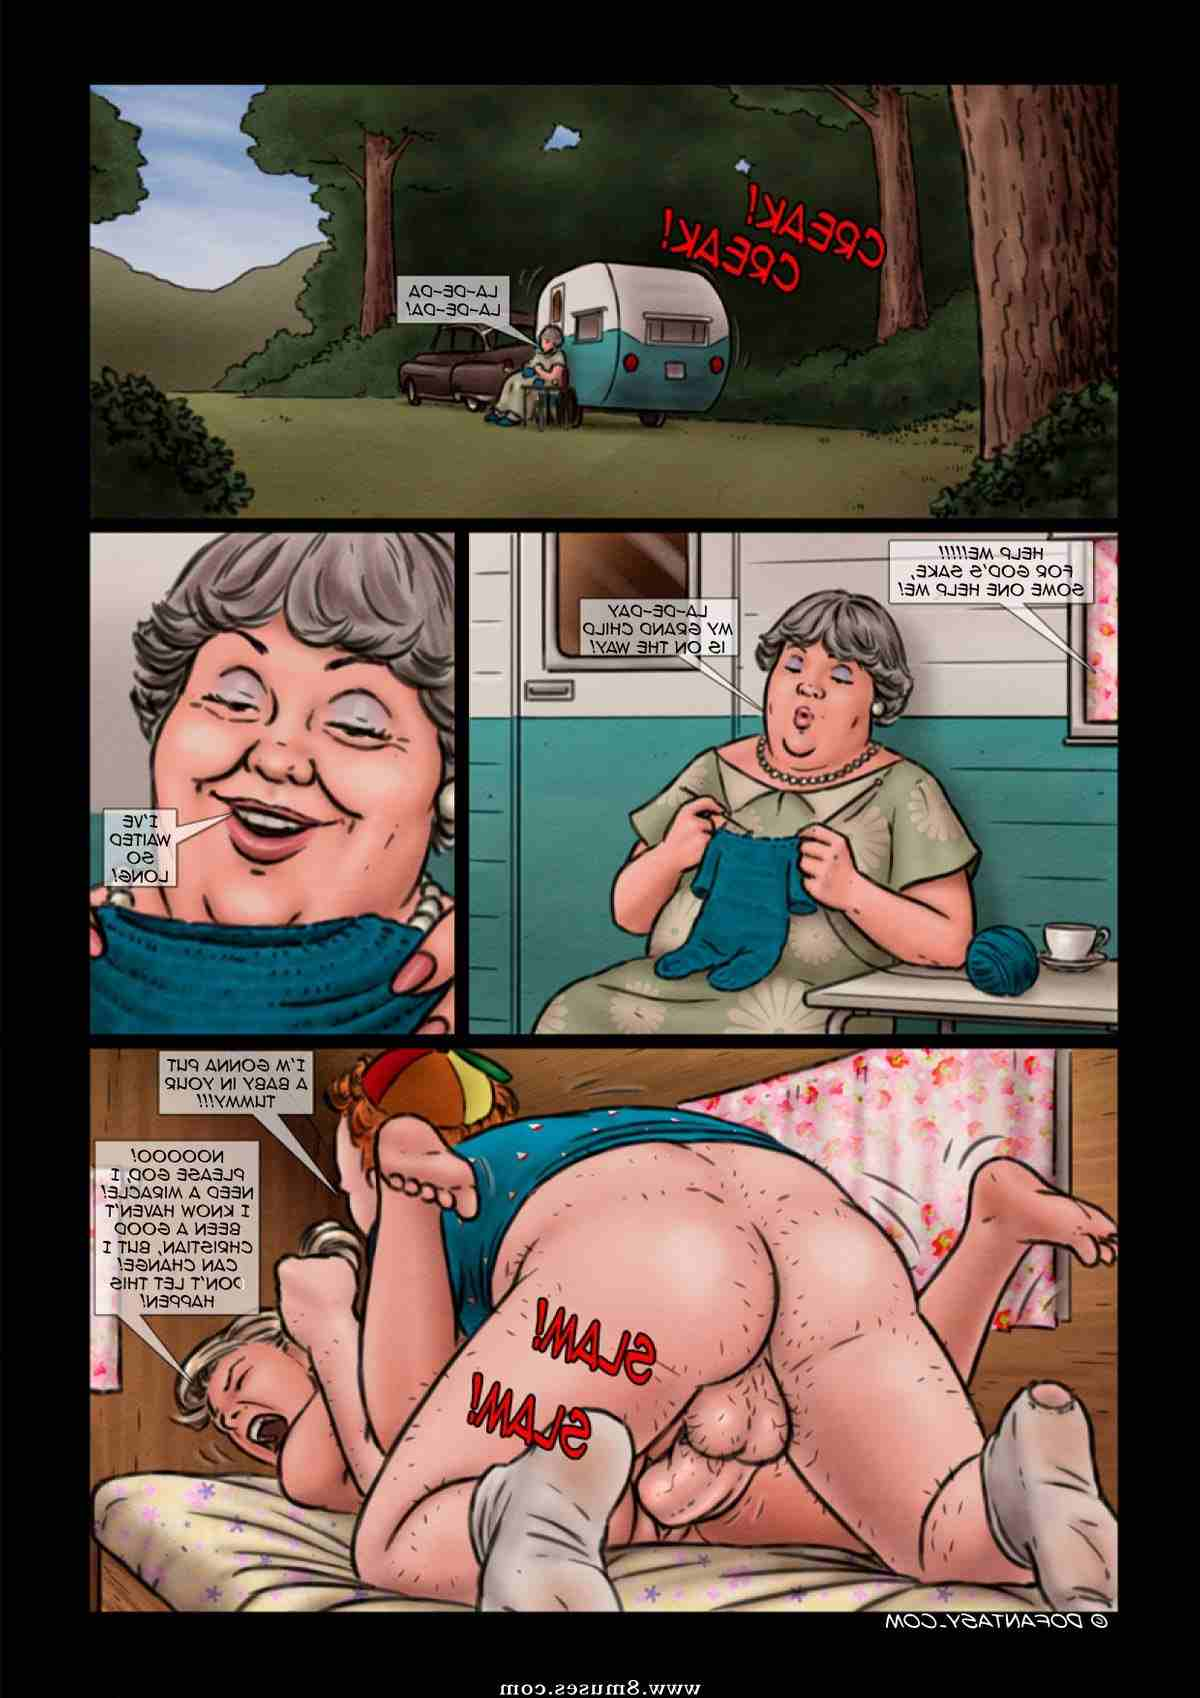 Fansadox-Comics/401-500/Fansadox-459-Mamas-Boy-3-Slasher Fansadox_459_-_Mamas_Boy_3_-_Slasher__8muses_-_Sex_and_Porn_Comics_36.jpg